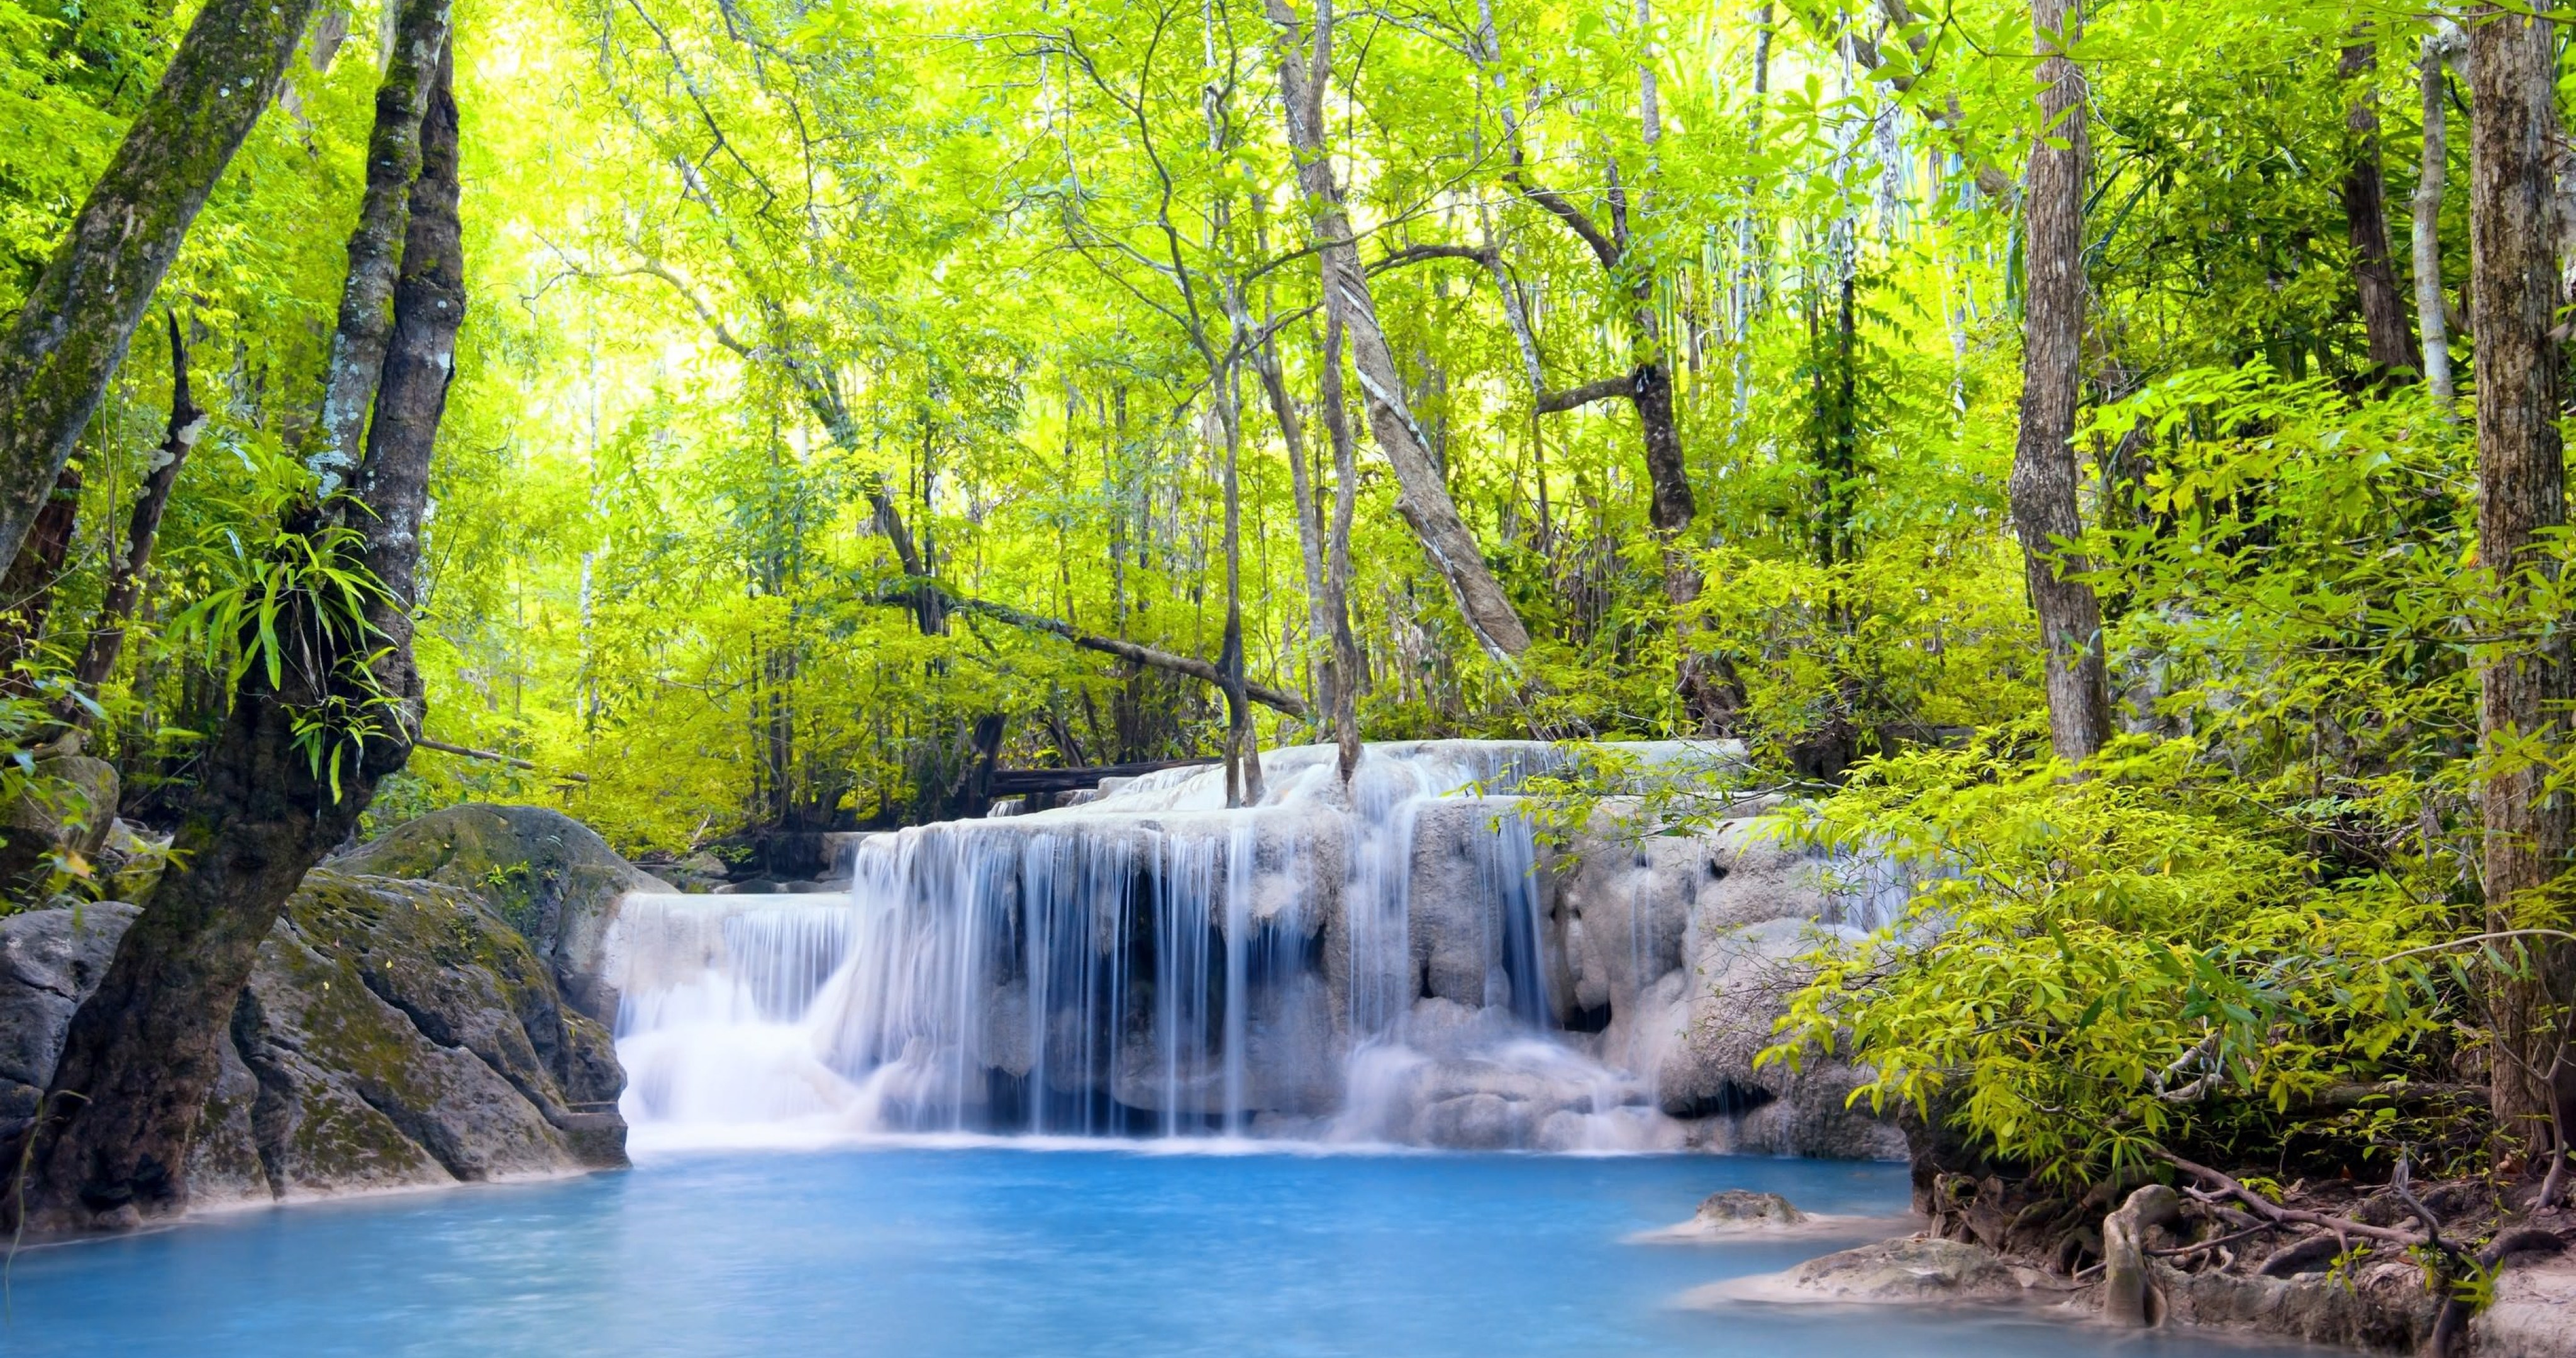 Cool Wallpaper High Quality Forest - 73203-waterfall-in-forest-wallpaper-68-4k-ultra-hd-wallpaper__nature  You Should Have_82766.jpg